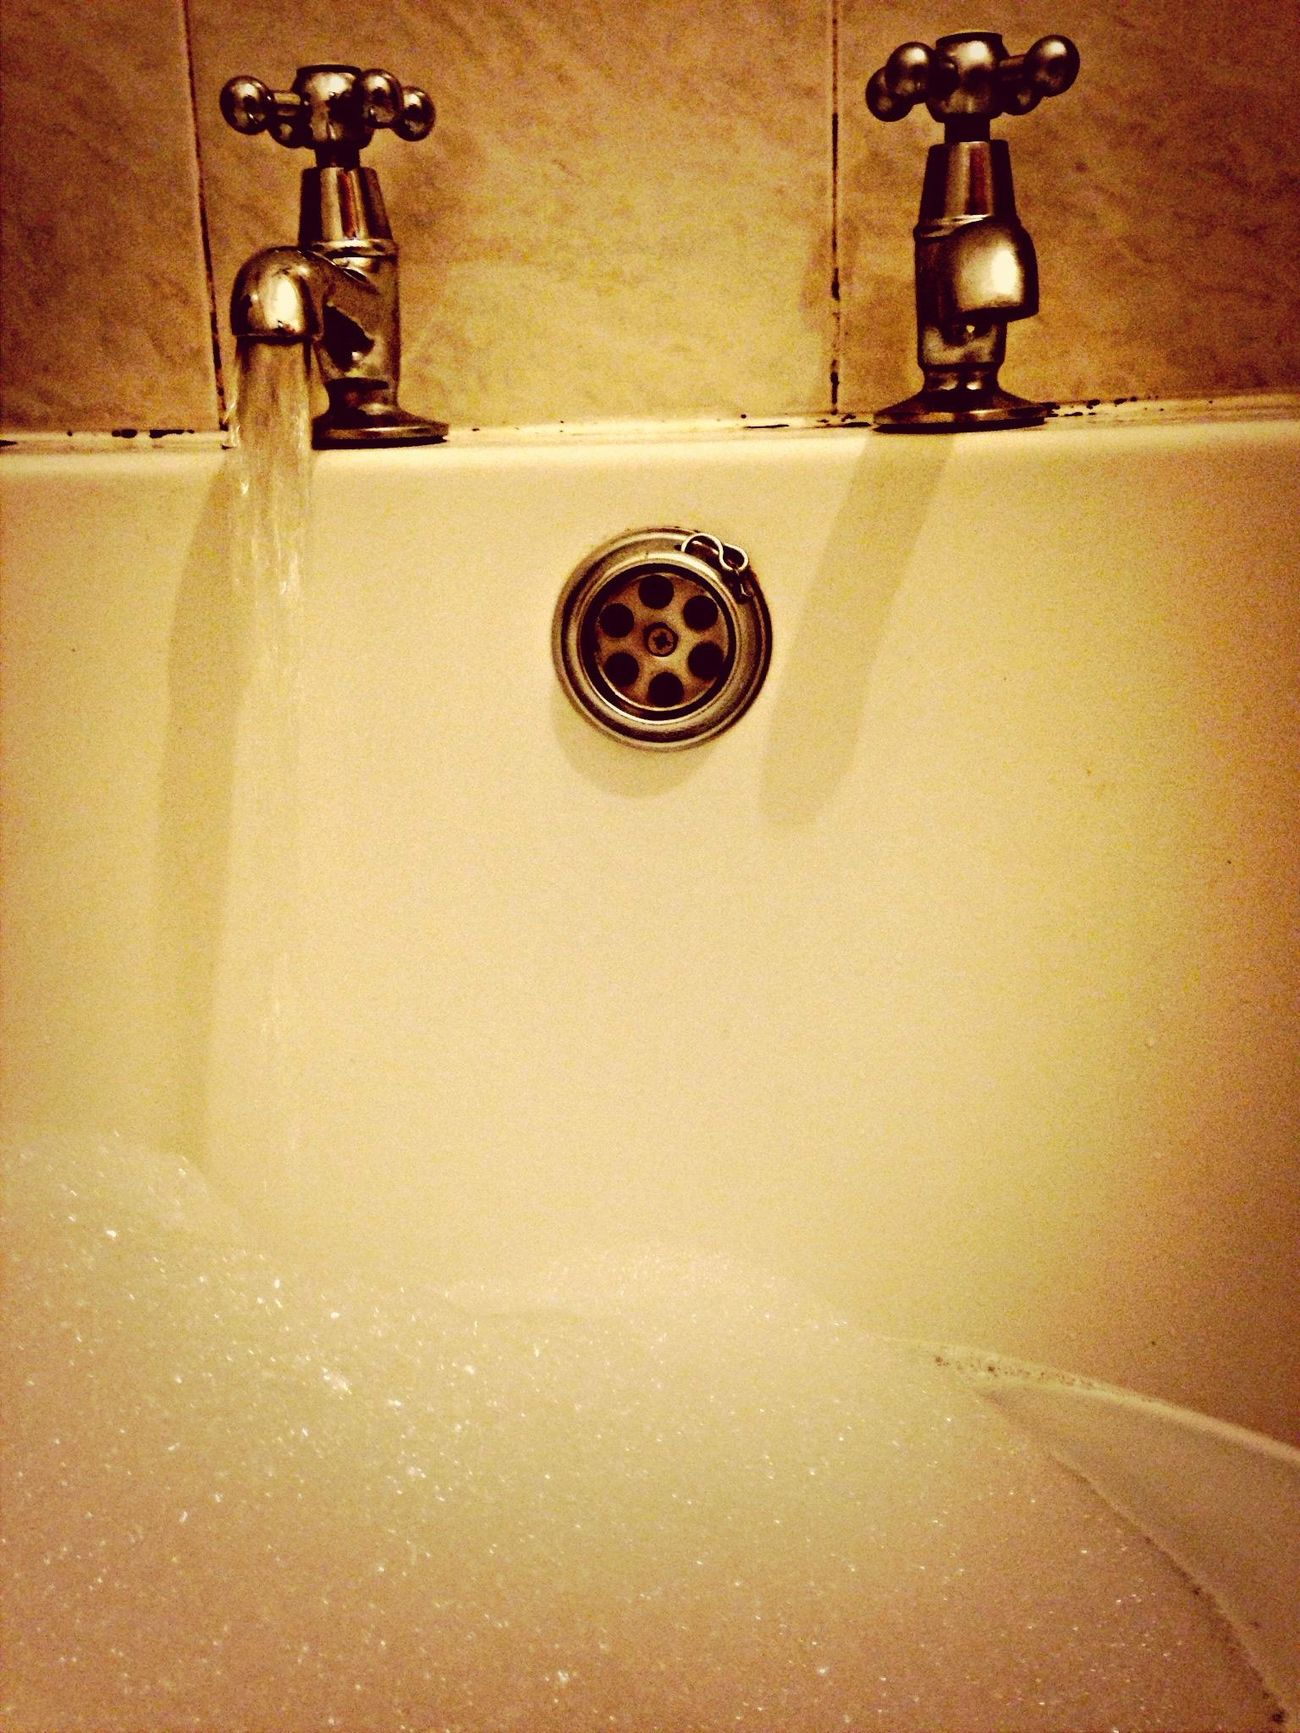 Hot bath with bubbles to relax in and forget how cold it really is.